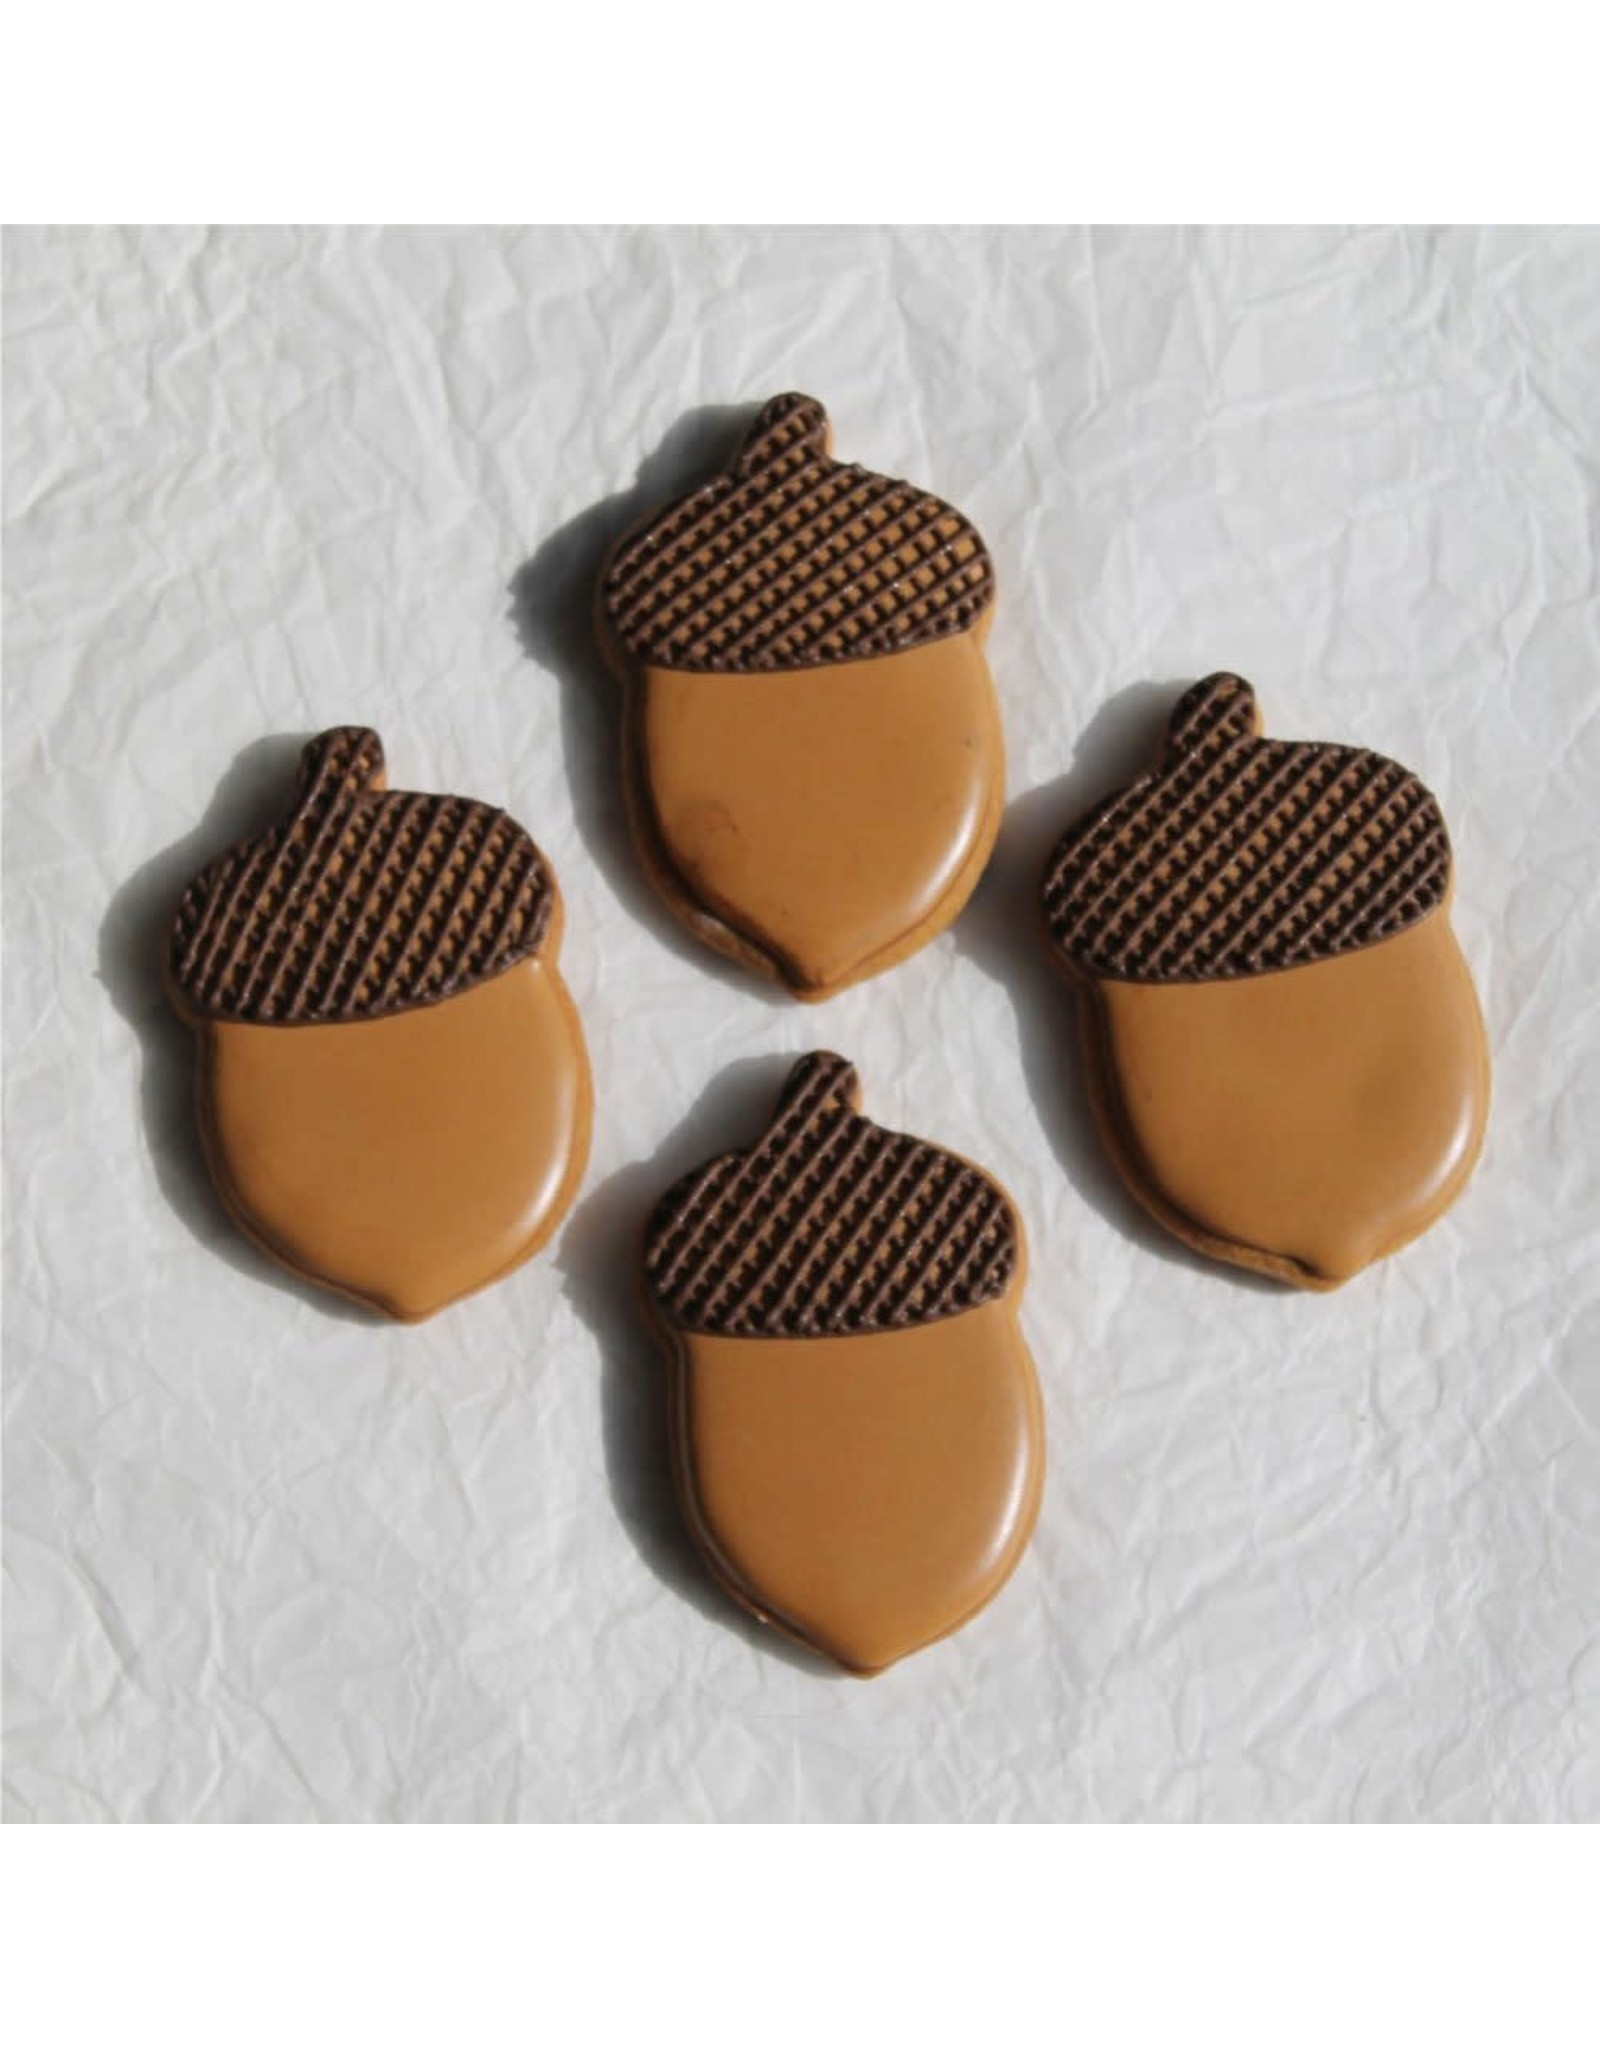 "2.5"" Acorn Cookie Cutter"